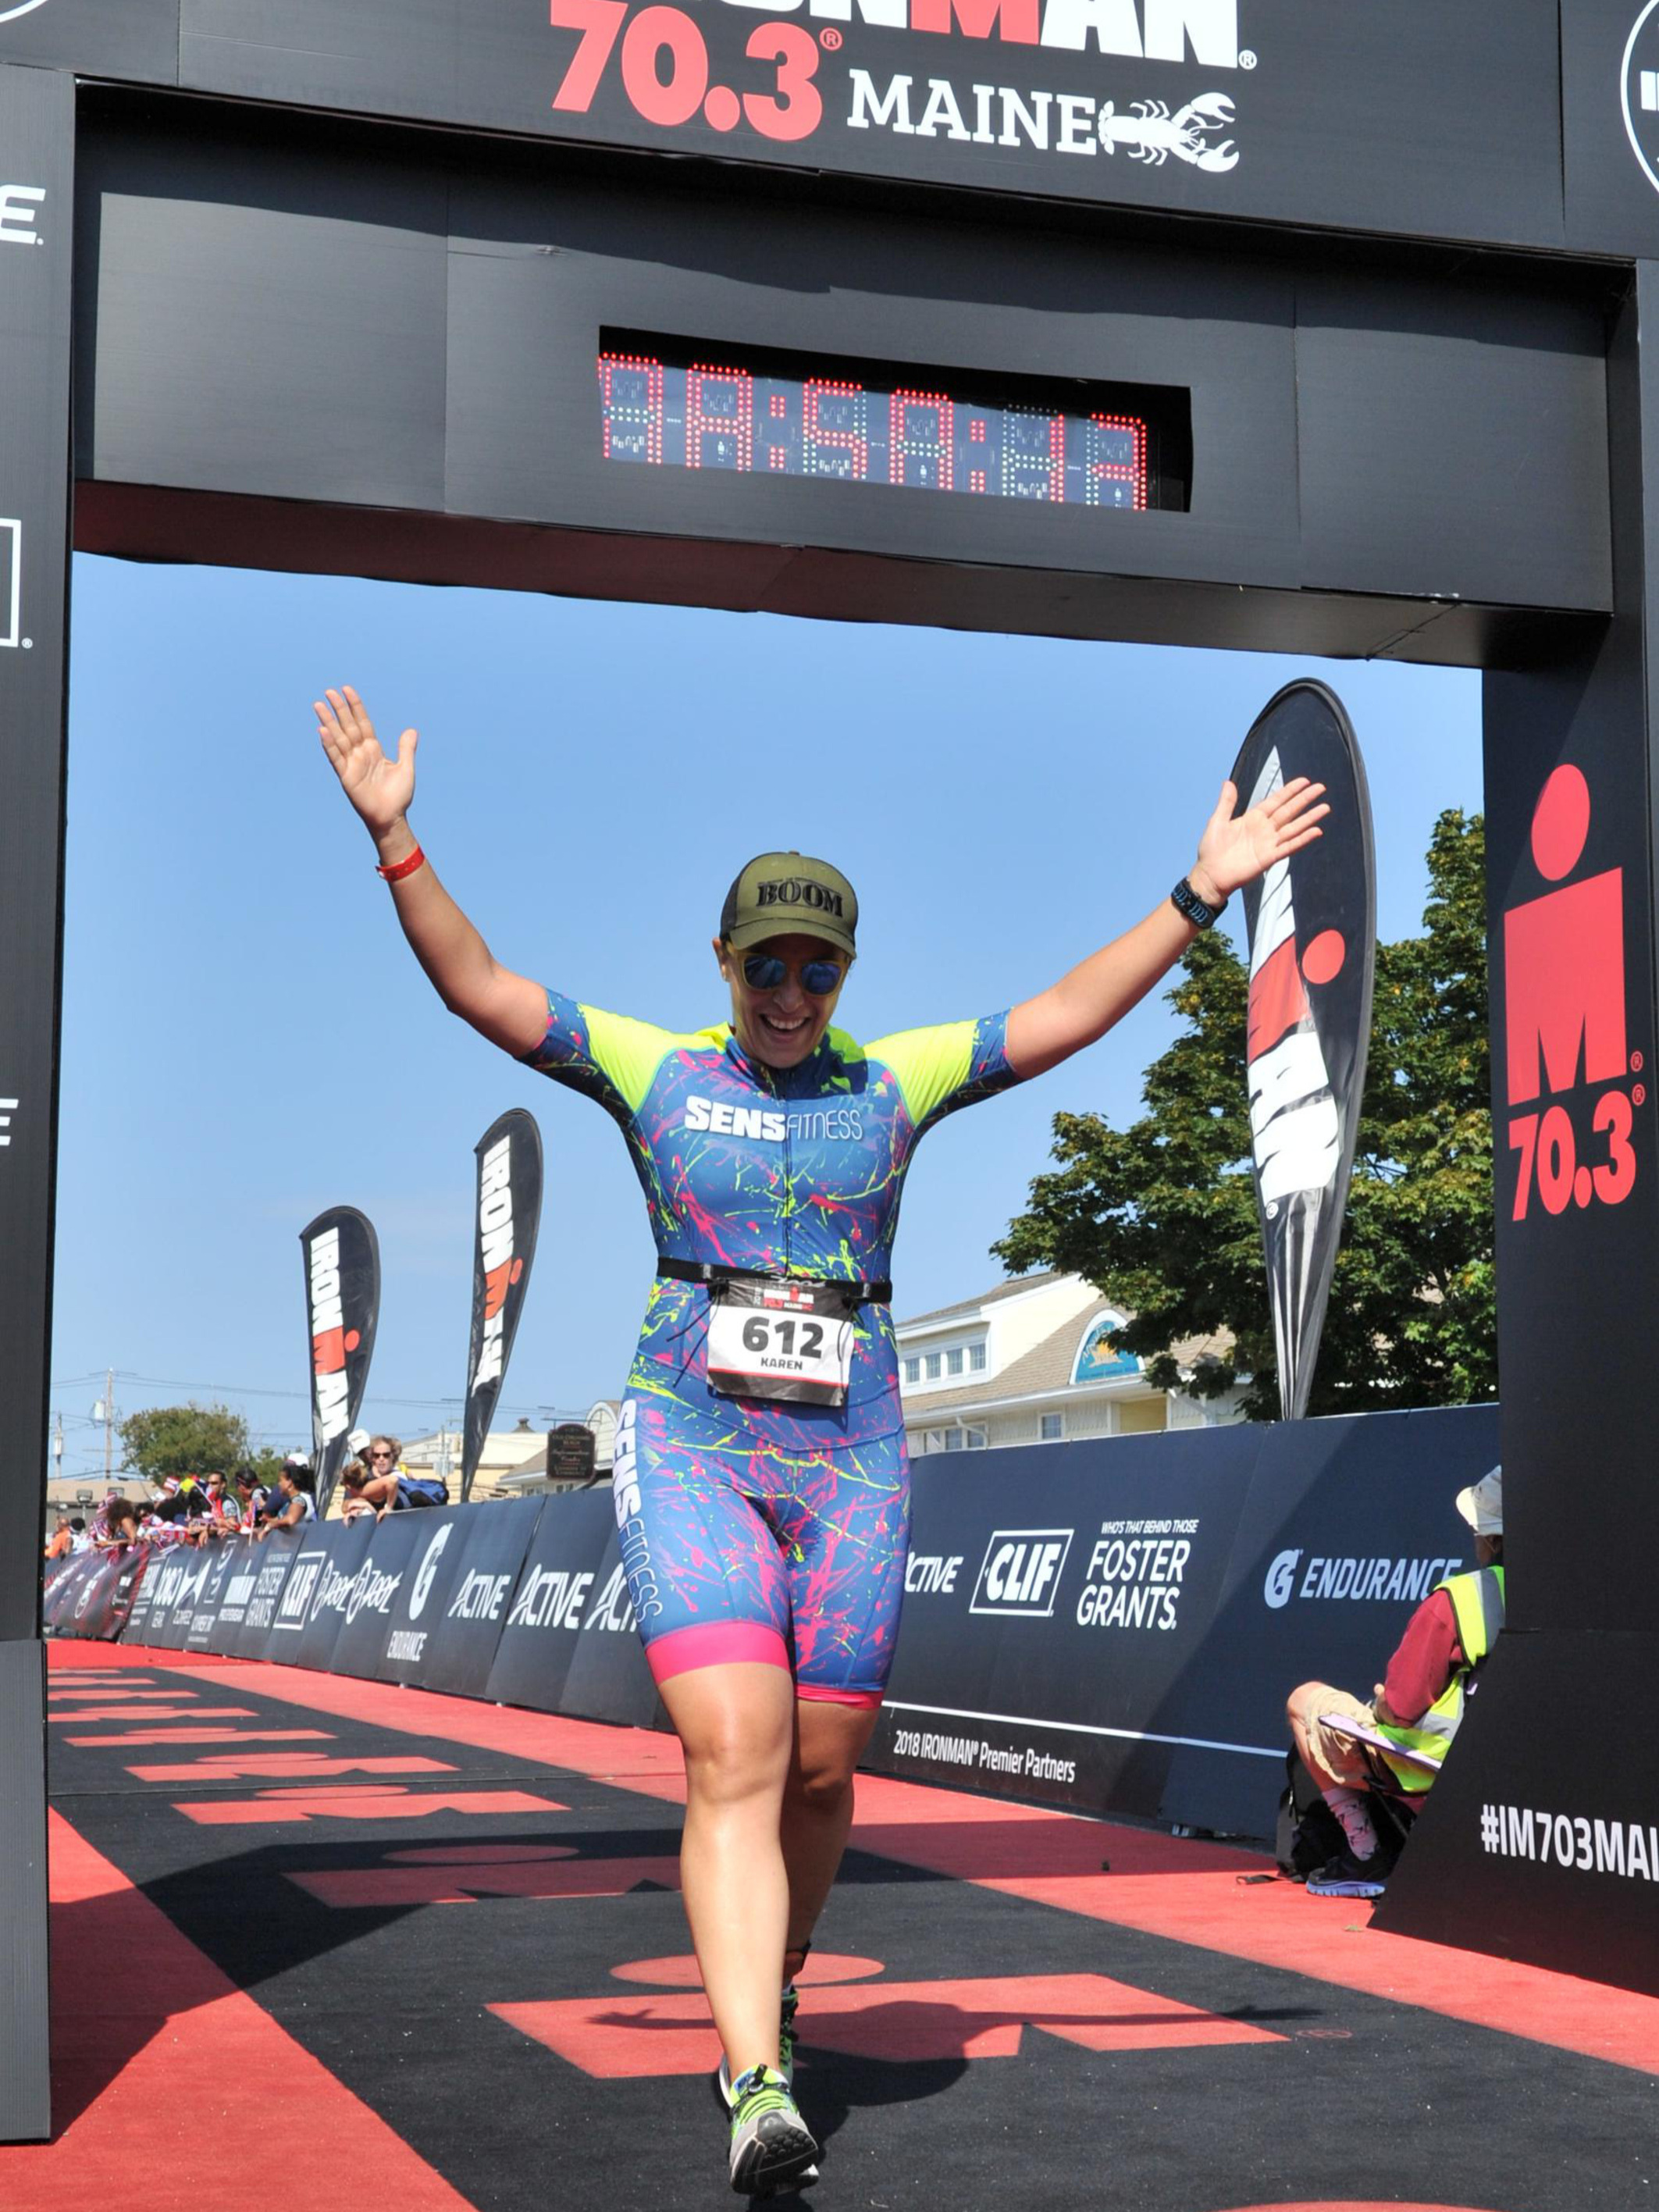 Karen Gazzale - Ironman 70.3 MaineUnable to swim a single pool lap to 70.3 finisher in 9 months.